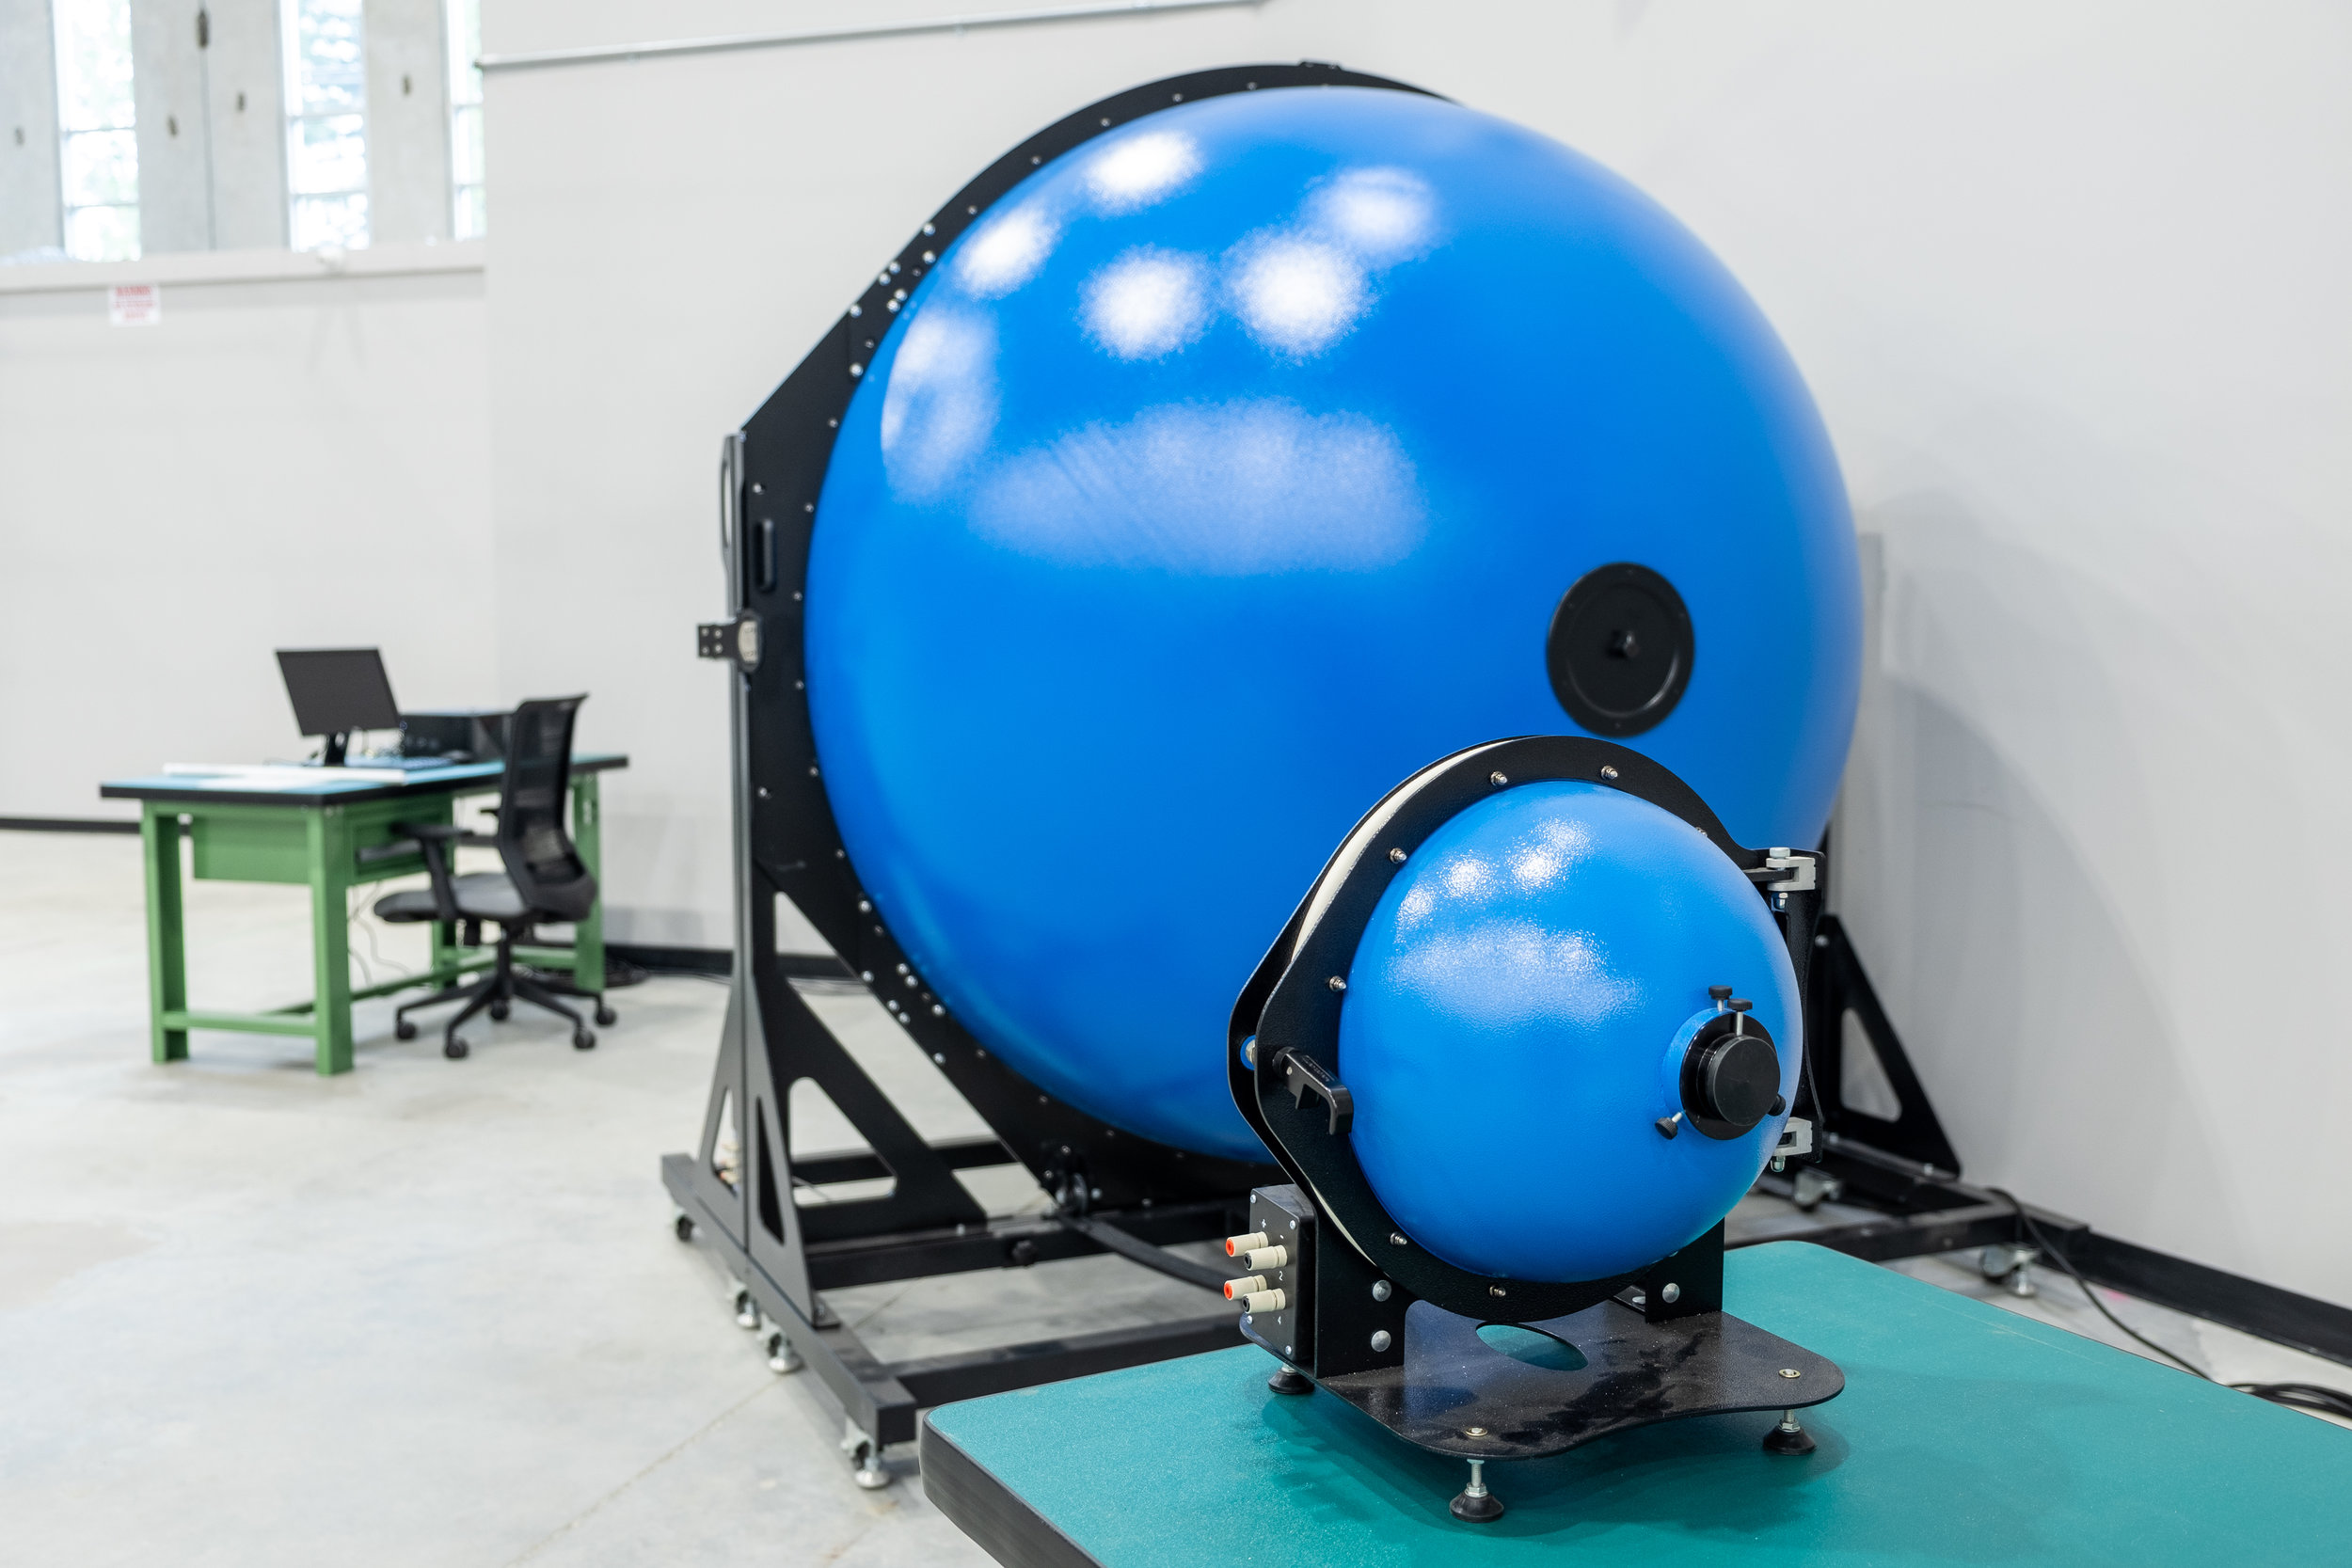 Equipped with in-house testing equipment such as, illumination sphere, temperature chamber testing, and 3-D printing equipment to design and test the highest quality products and prototypes according to the customer's demands.